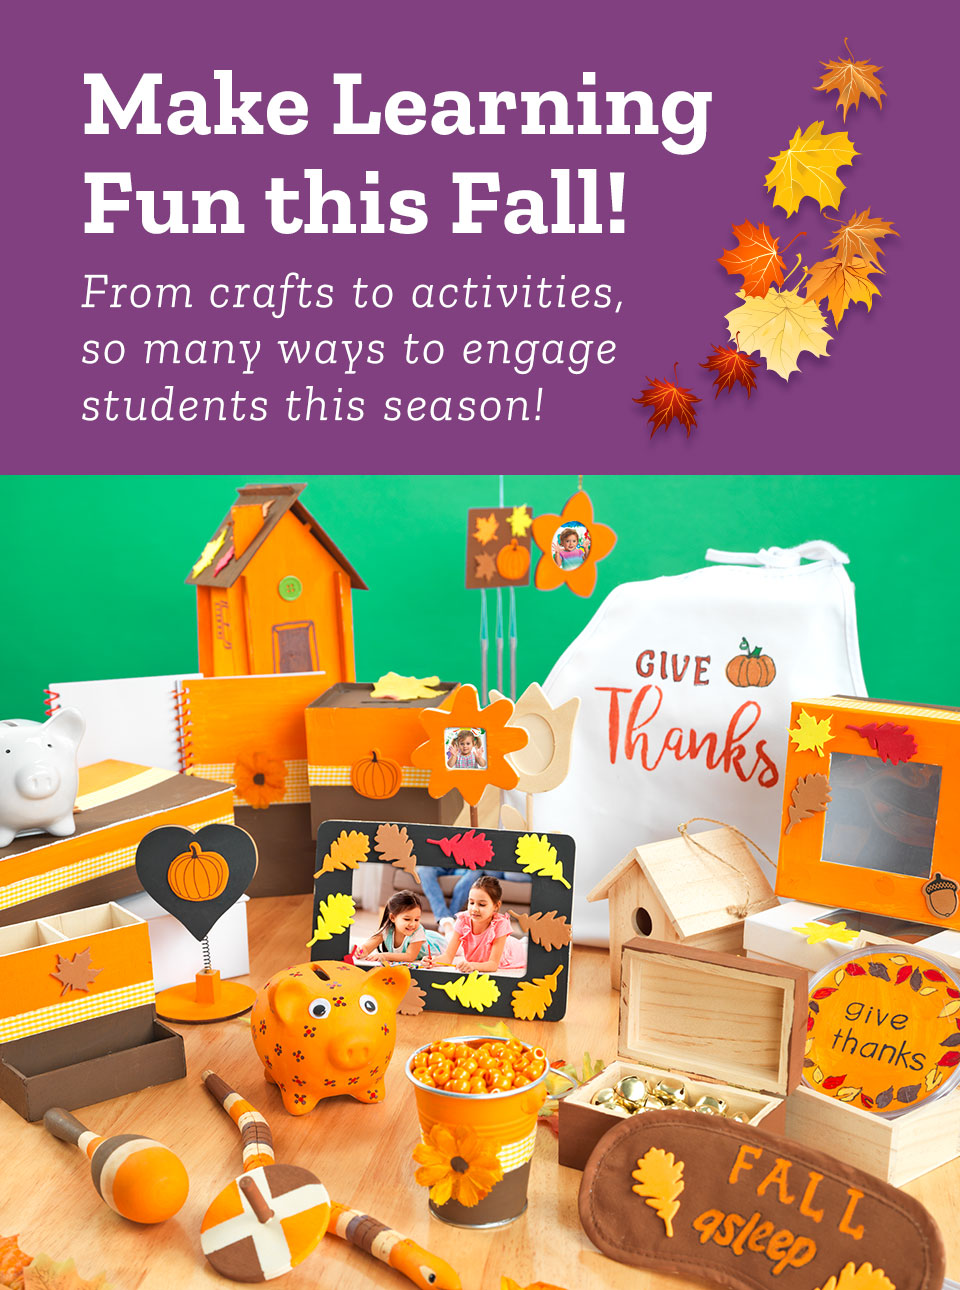 Make Learning Fun This Fall!   From crafts to activities, so many ways to engage students this season!